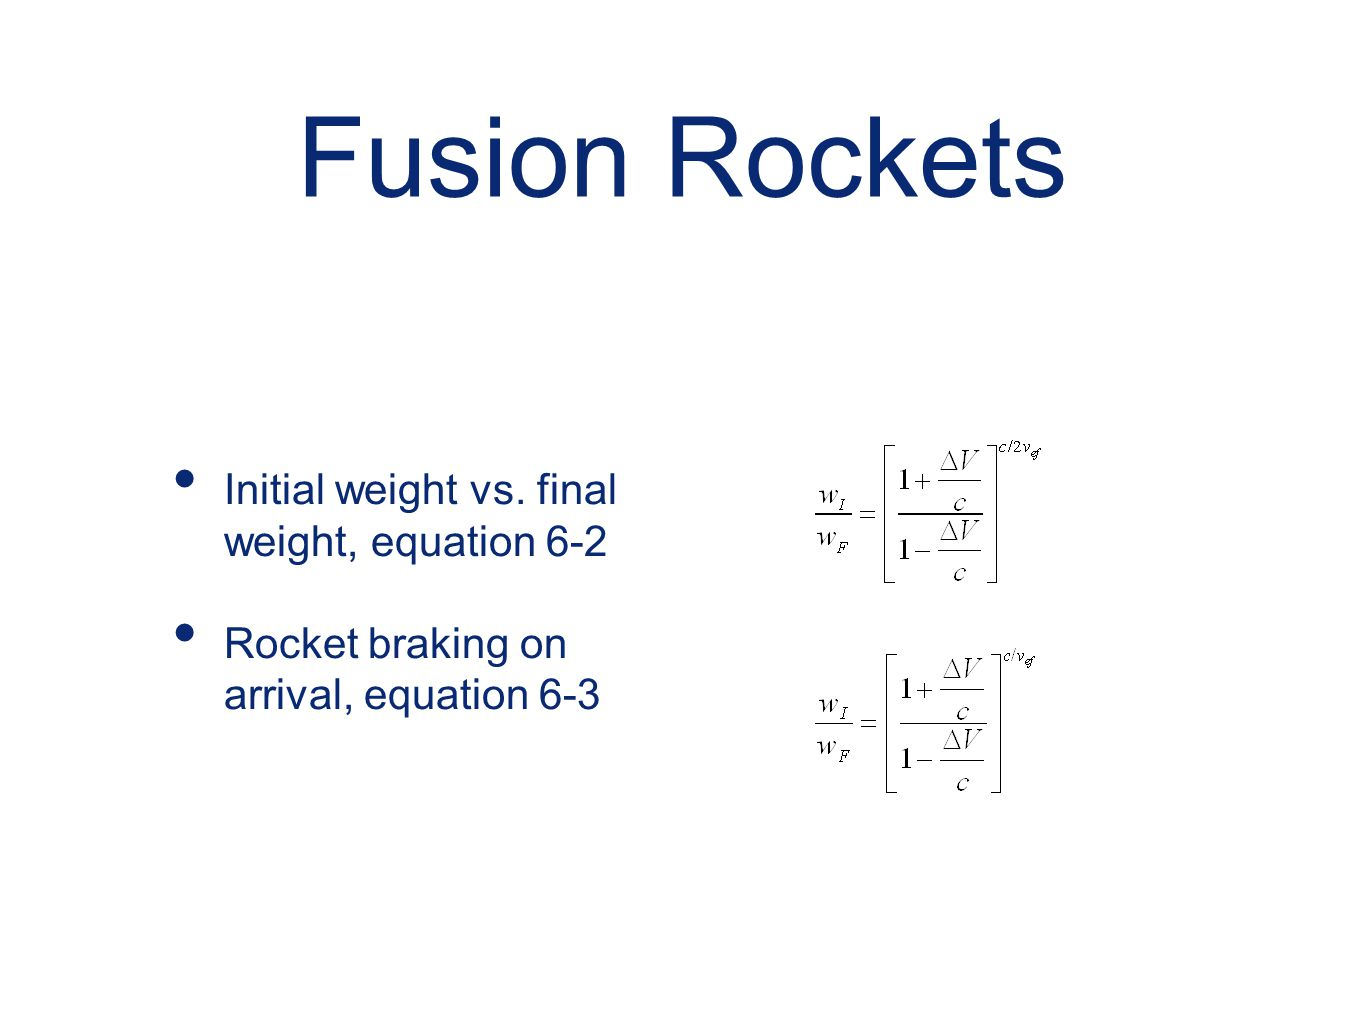 Fusion Rockets Initial weight vs. final weight, equation 6-2